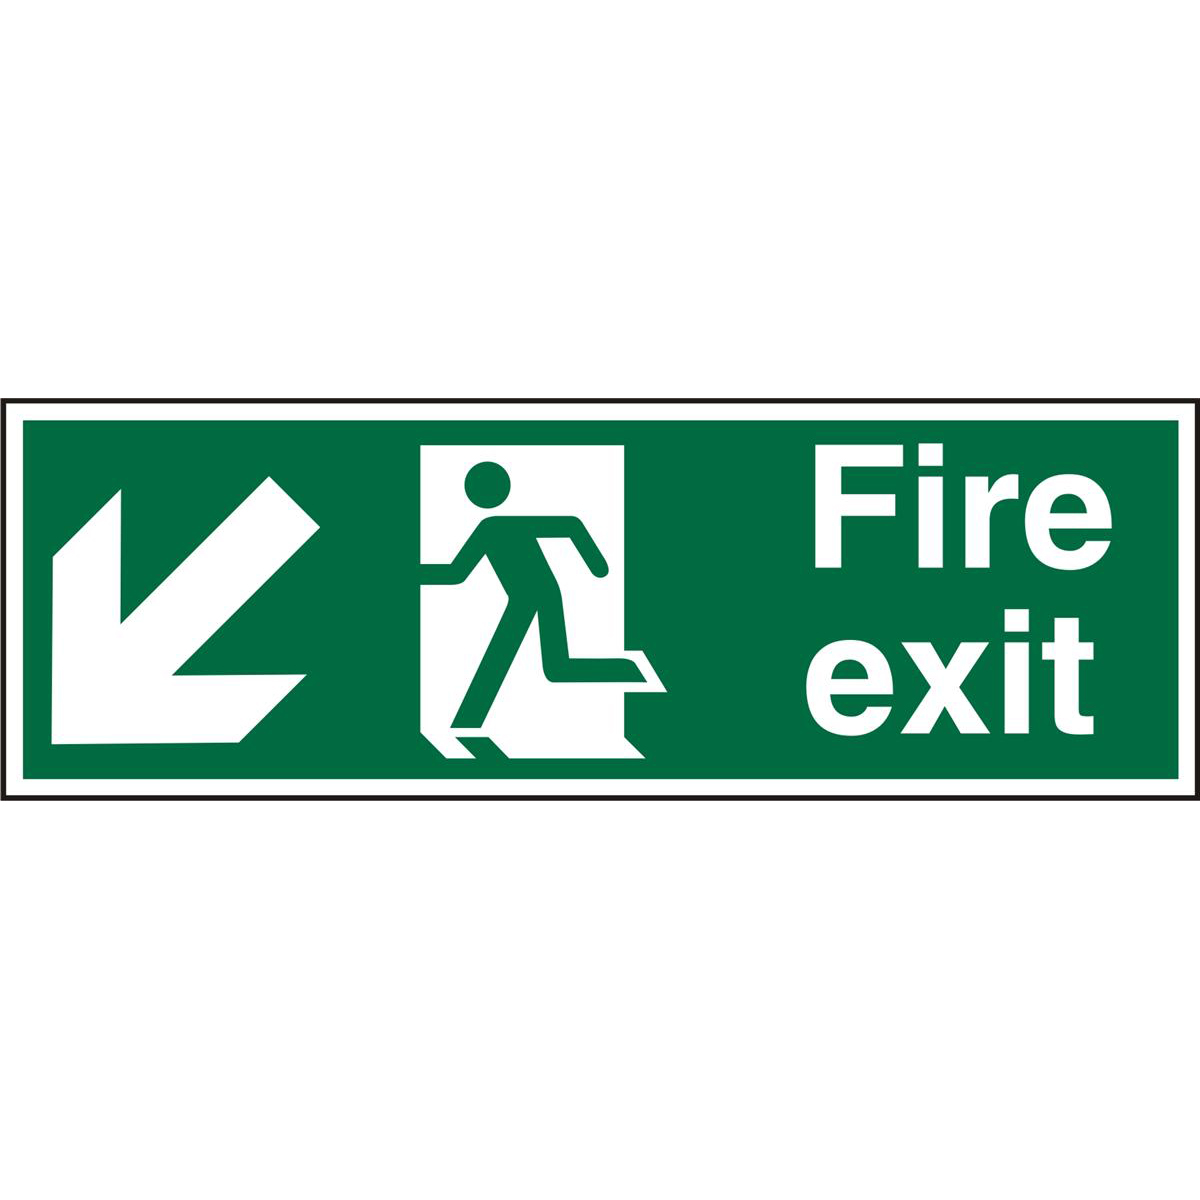 PrestigeSign 2mm DS 300x100 FireExit Man Running LeftArrow Ref ACSP122300x100 Up to 10 Day Leadtime